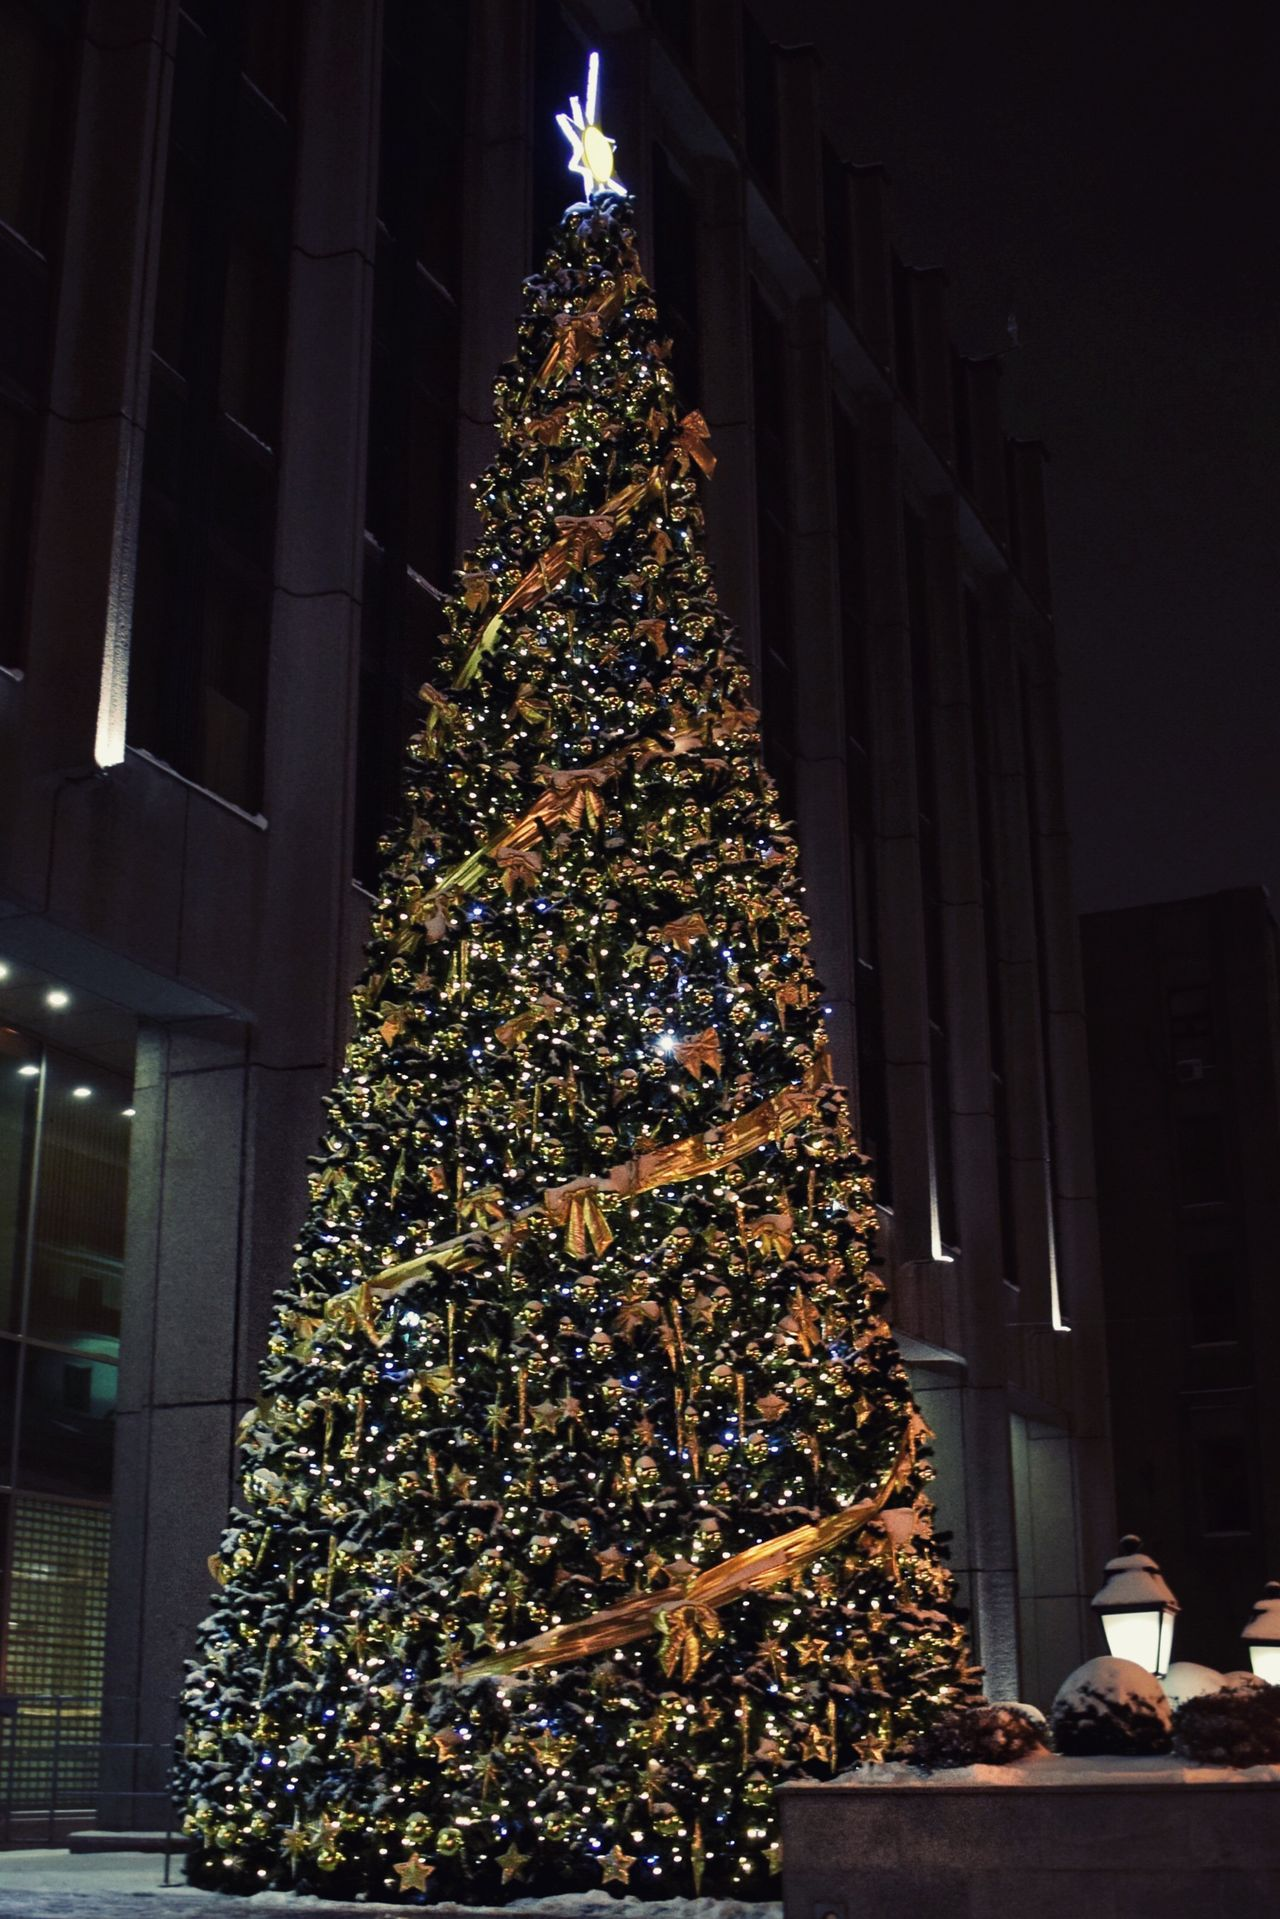 A lovely Christmas tree 🎄 Christmas Christmas Tree Building Exterior Architecture Tree Illuminated Built Structure Christmas Decoration Christmas Lights City No People Celebration Low Angle View Sky Night Tree Topper Outdoors Christmas Ornament Street Photography Nightphotography Night Photography Christmas Around The World